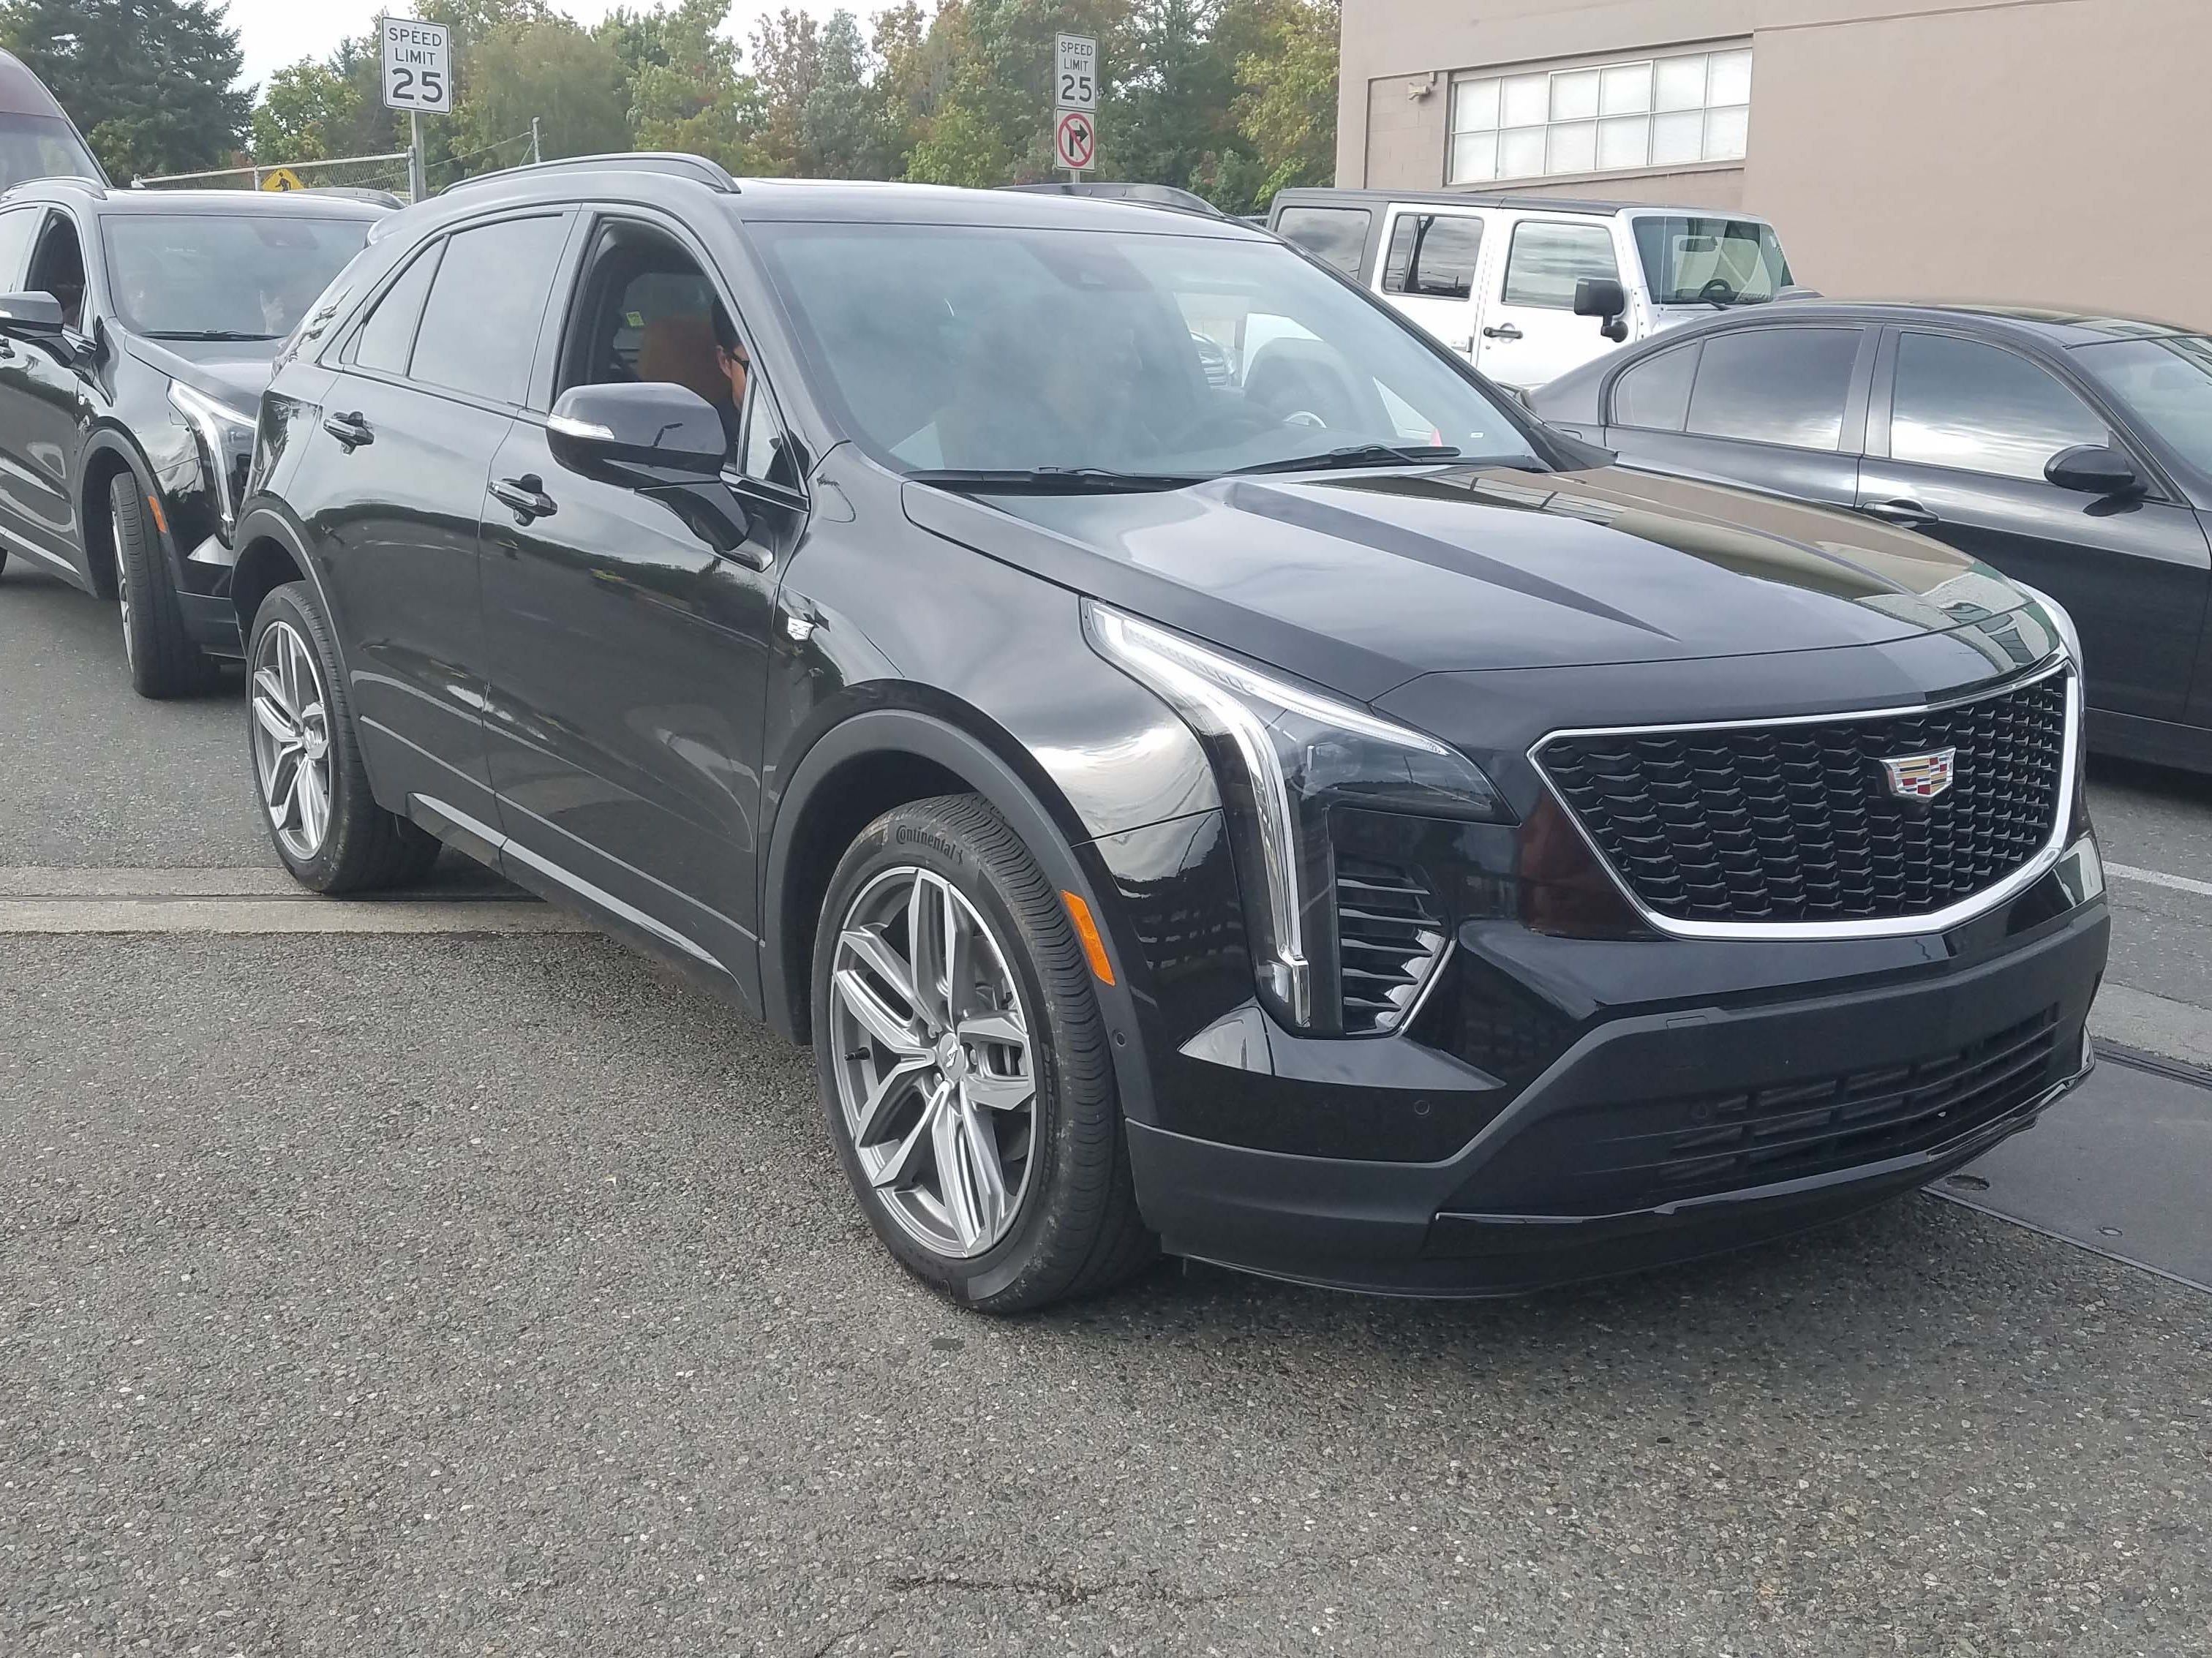 """The 2019 Cadillac XT4 offers two trim """"branches"""" off its base, $35,790 luxury model: Premium Luxury and Sport. Dress the Sport model in black and it has a wicked presence."""